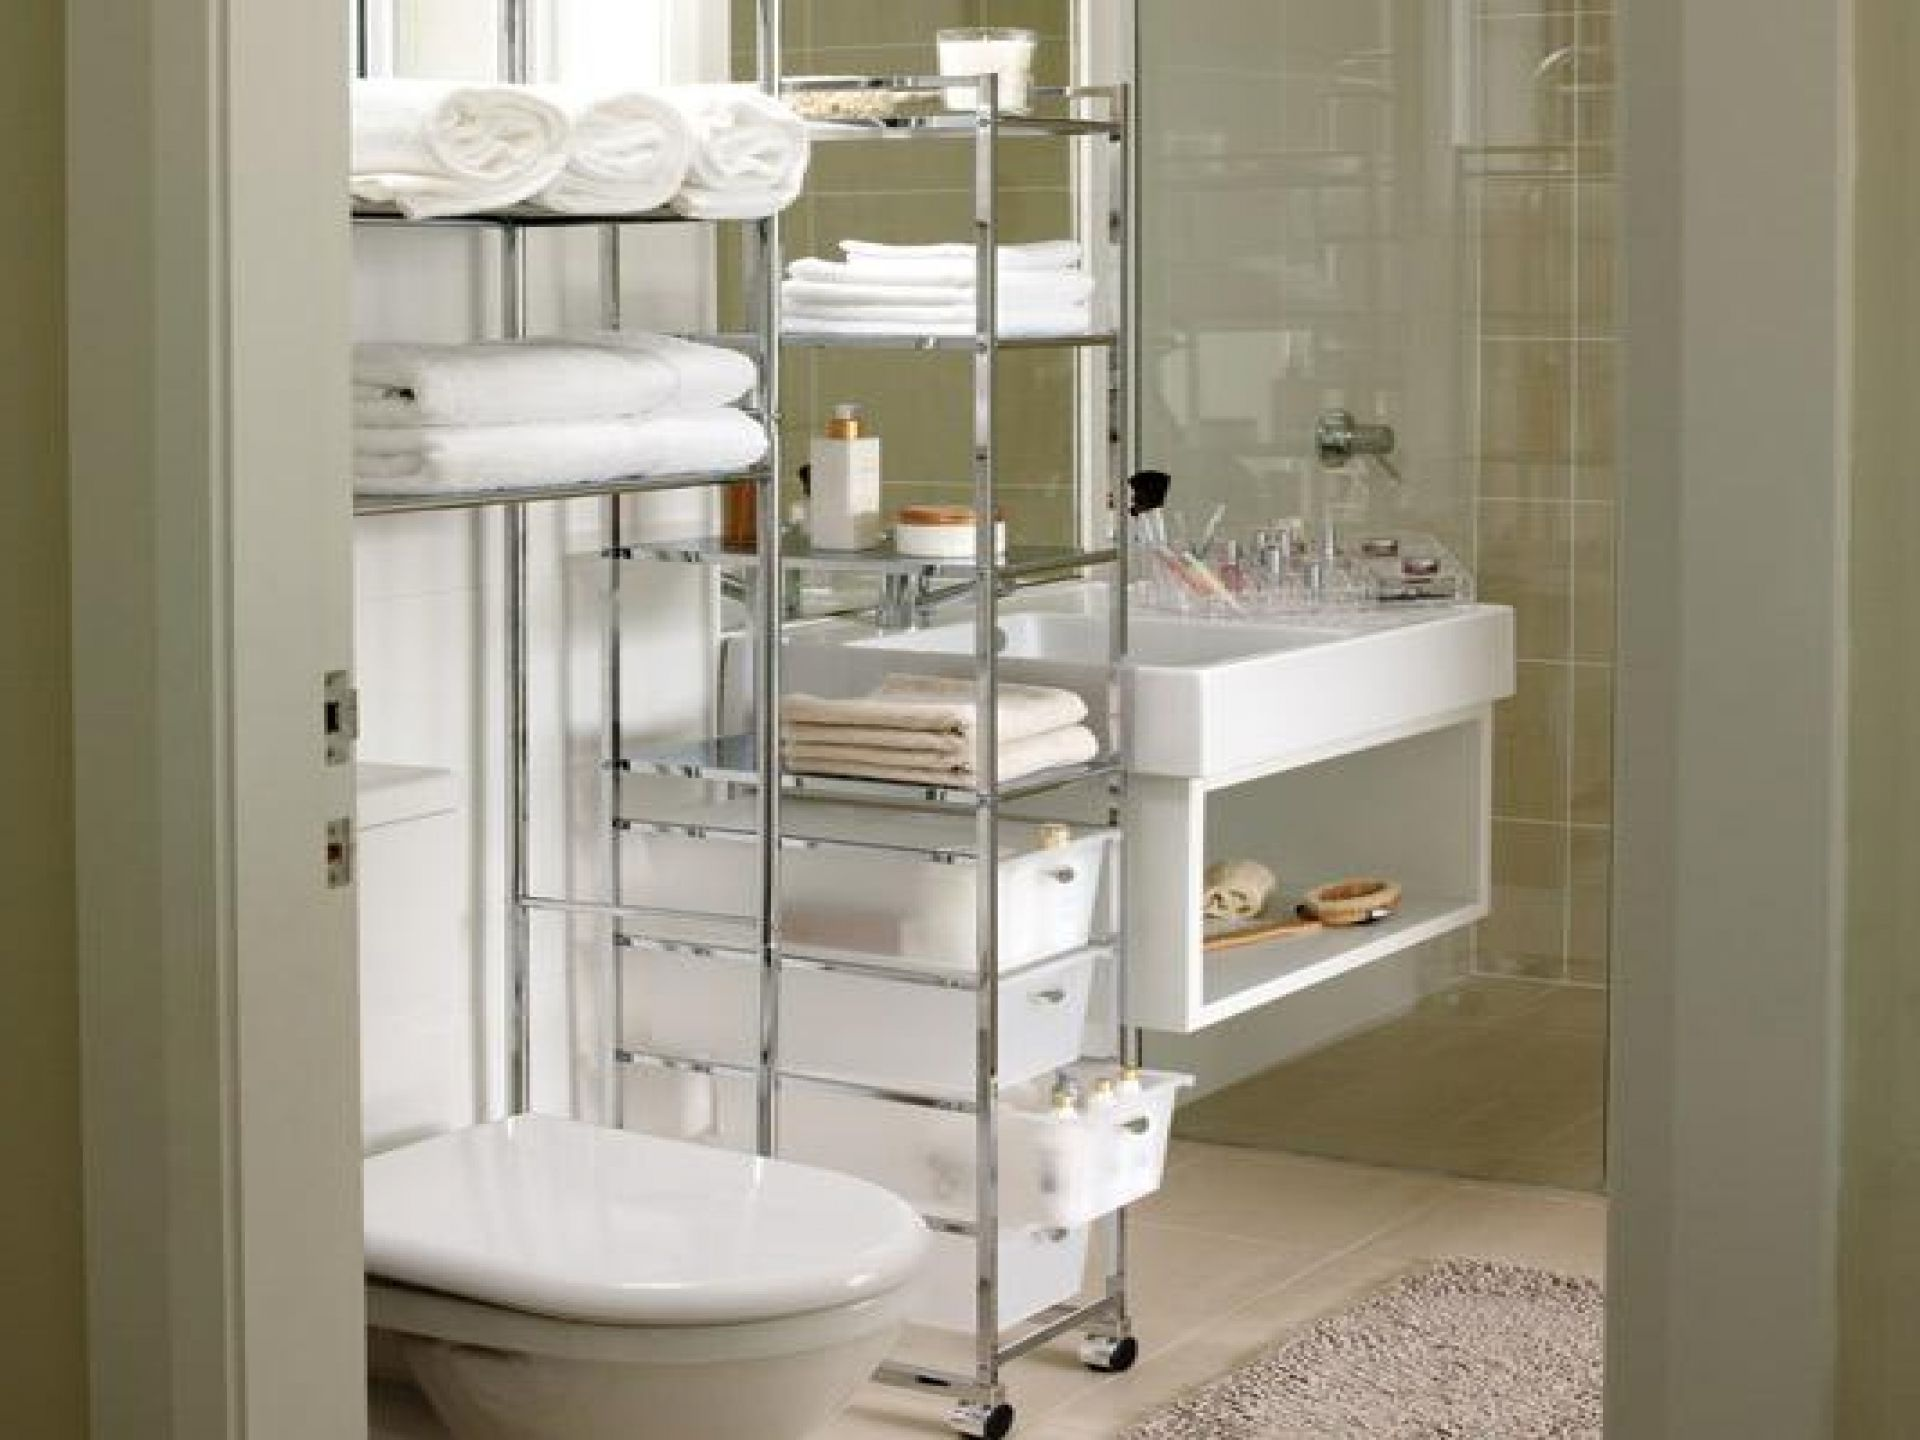 Small bathroom storage ideas - Small Bathroom Cabinets Ideas Of Decor Idea Bathroom Storage Ideas For Small Bathrooms For Architecture Home